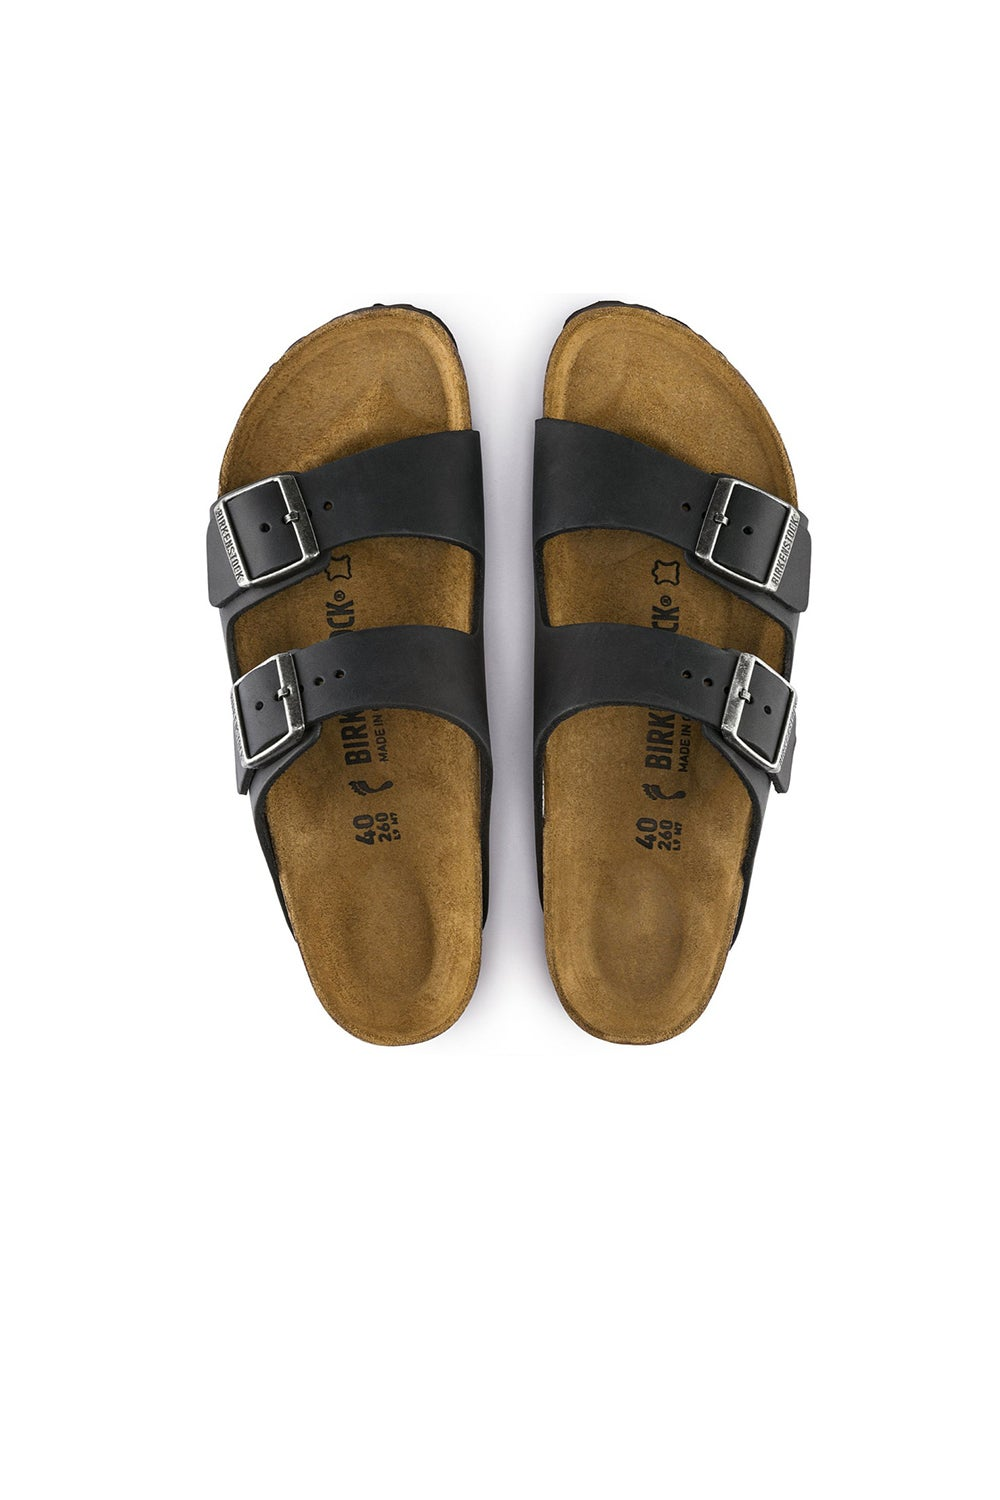 Birkenstock Arizona Regular Fit Black